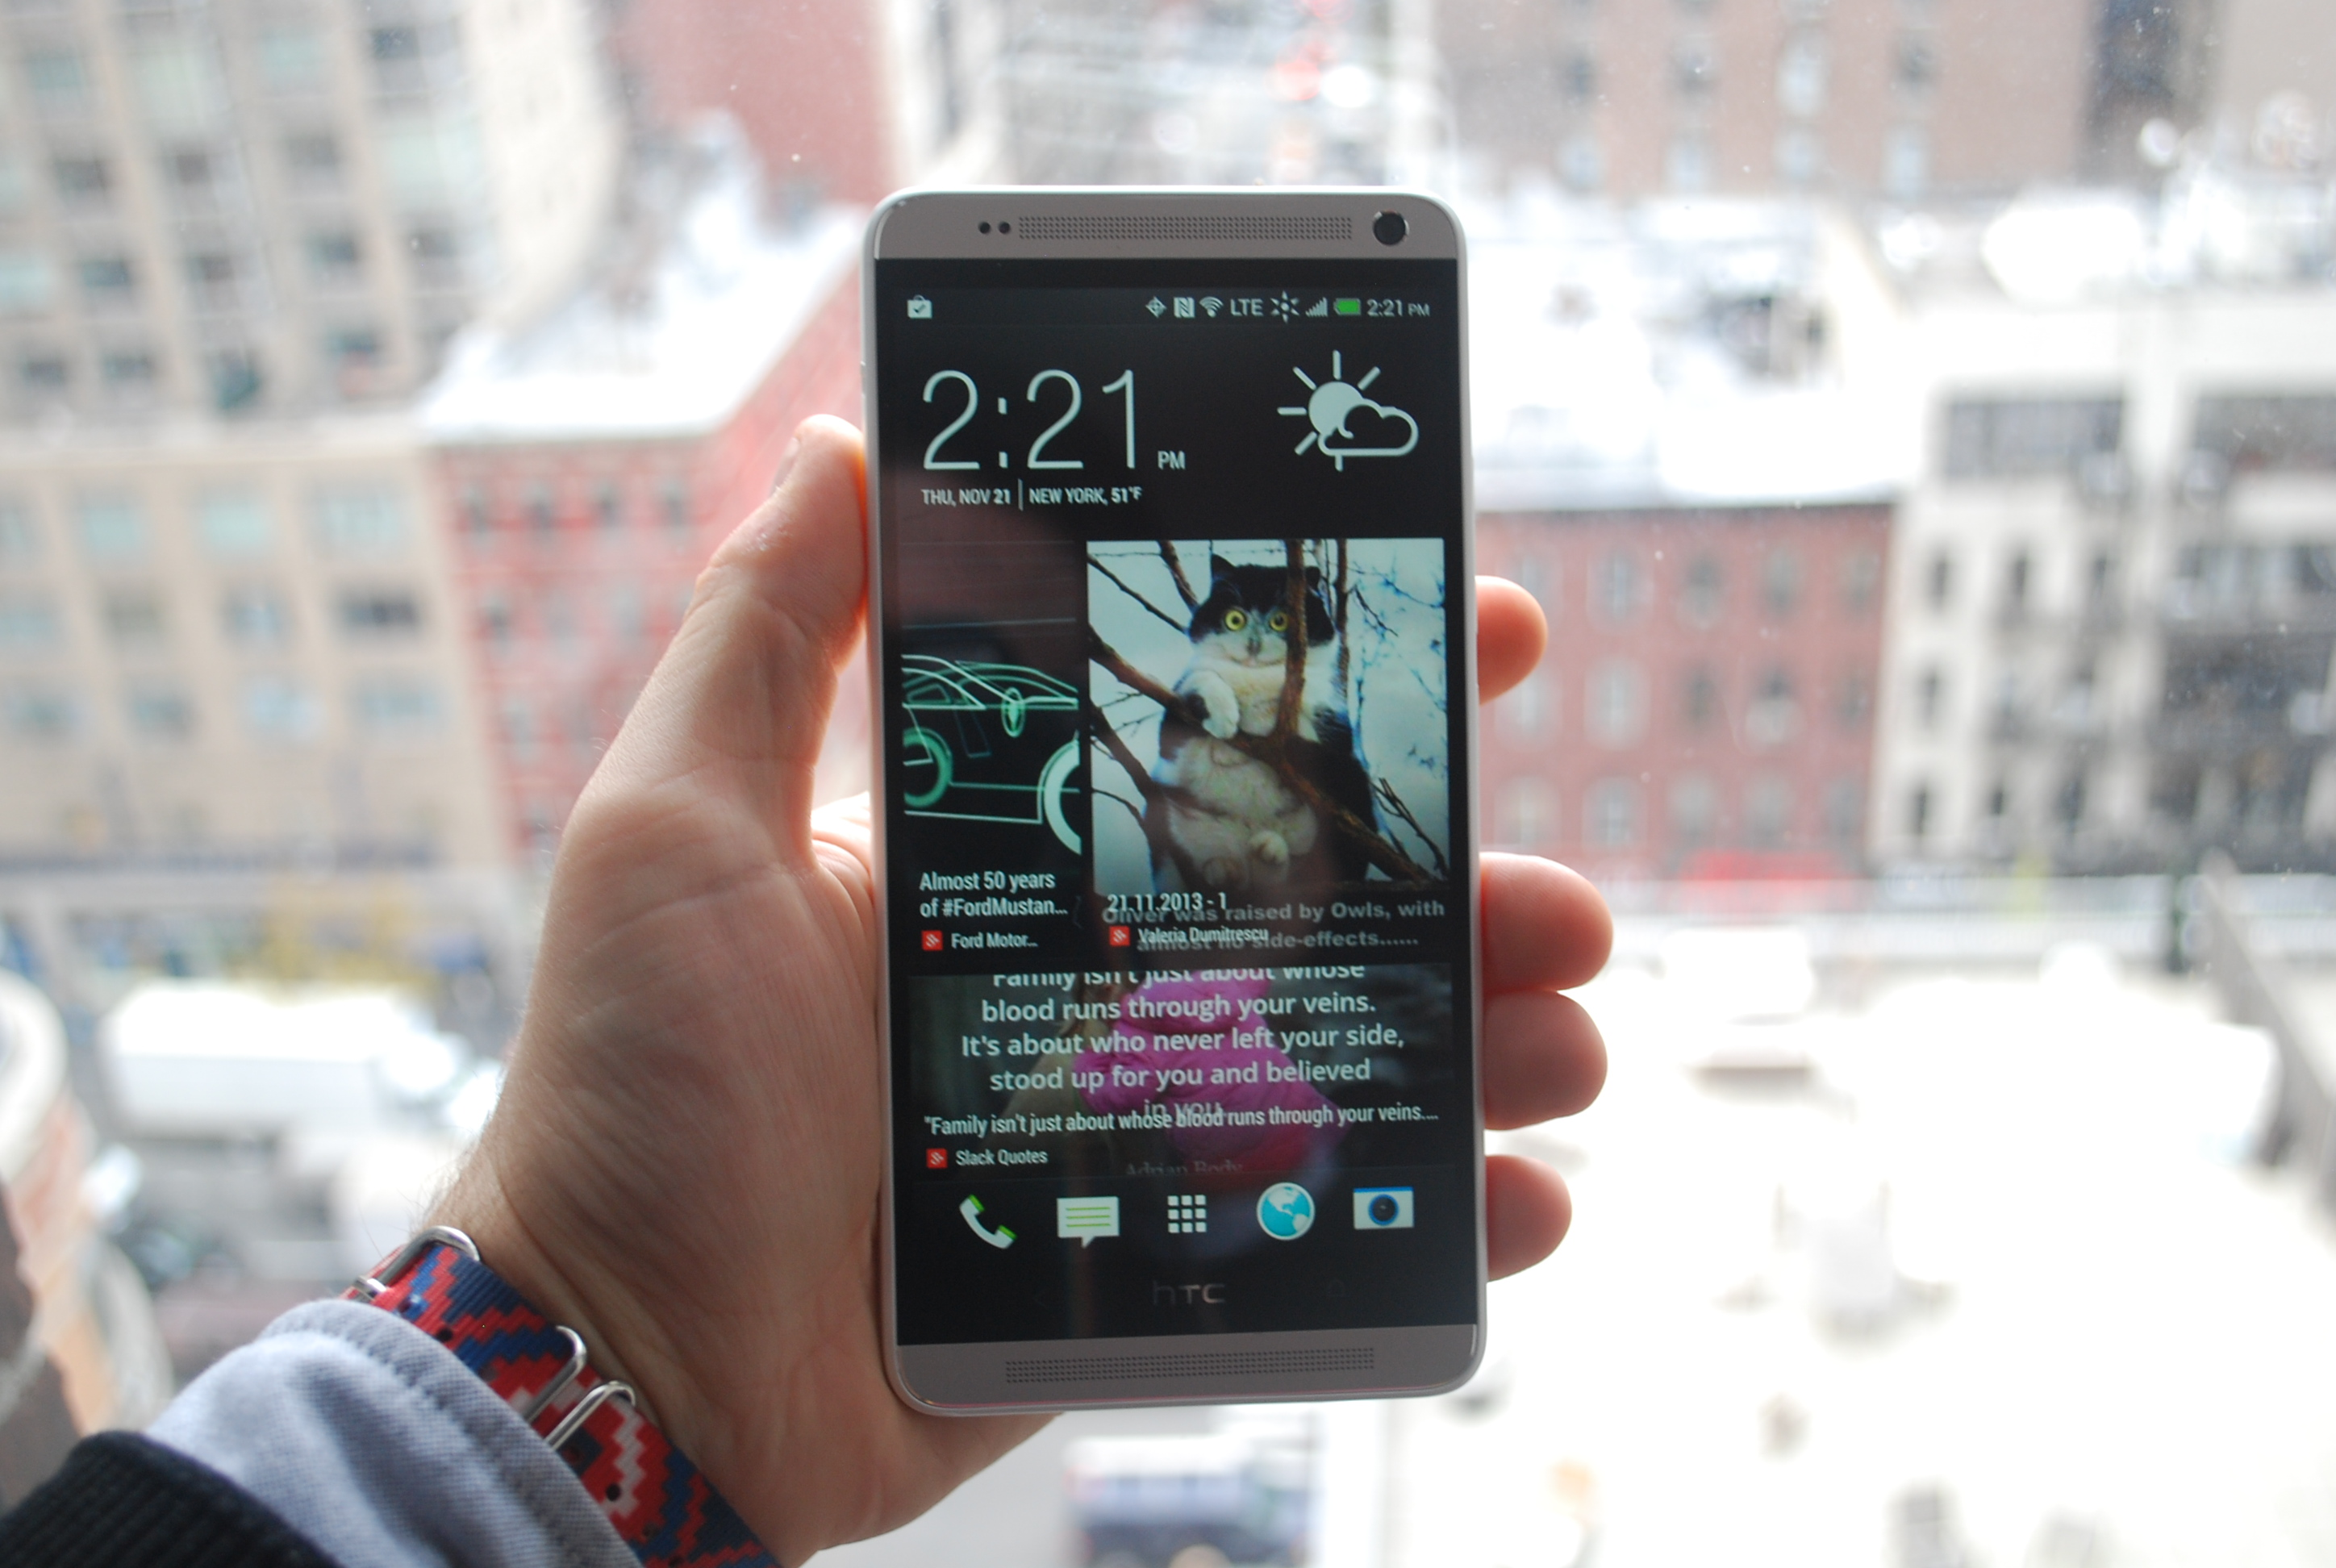 HTC One Max display